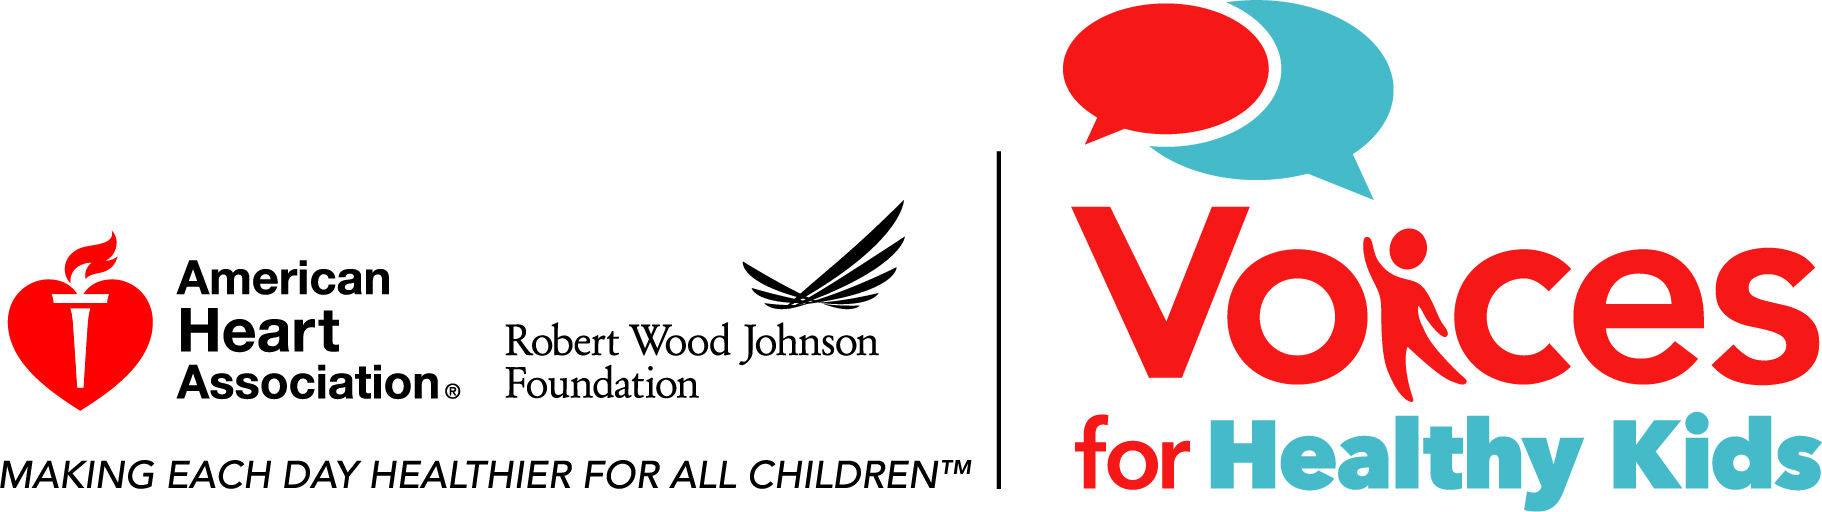 Voices for Healthy Kids Calls for Early Care and Education Campaign Proposals